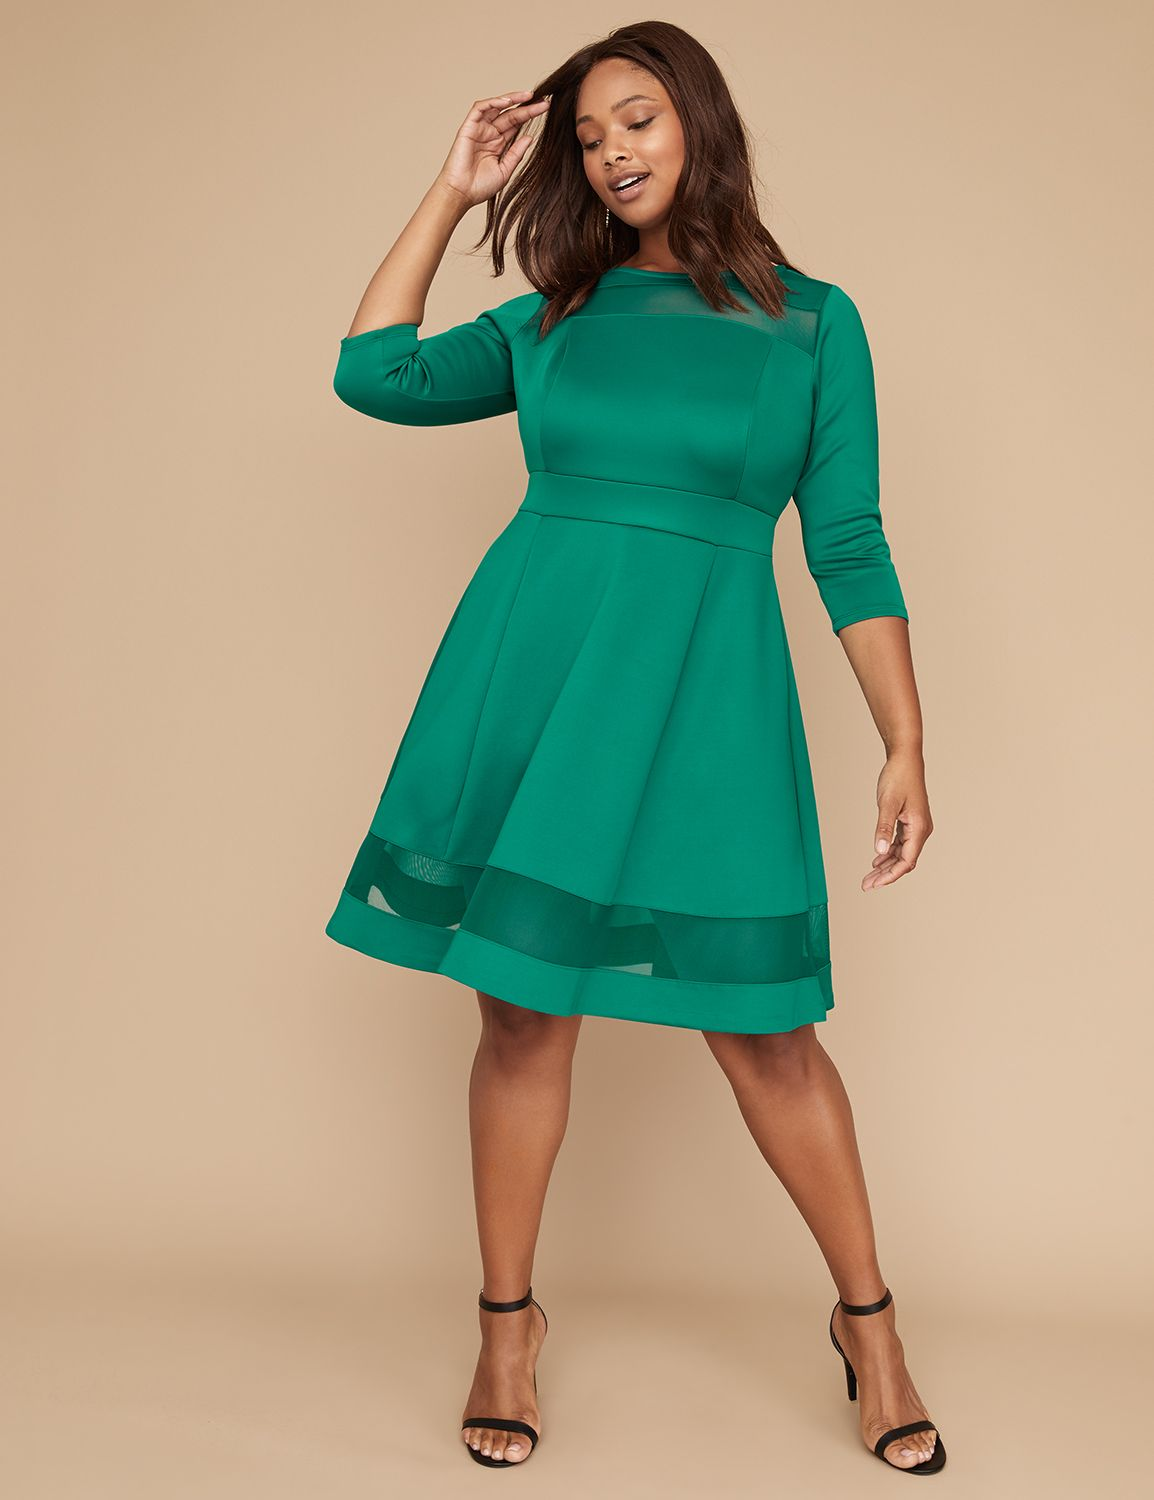 Plus Size Swing Dresses, Vintage Dresses Lane Bryant Womens 34 Sleeve Scuba Fit  Flare Dress With Mesh 2224P Everglade $89.95 AT vintagedancer.com